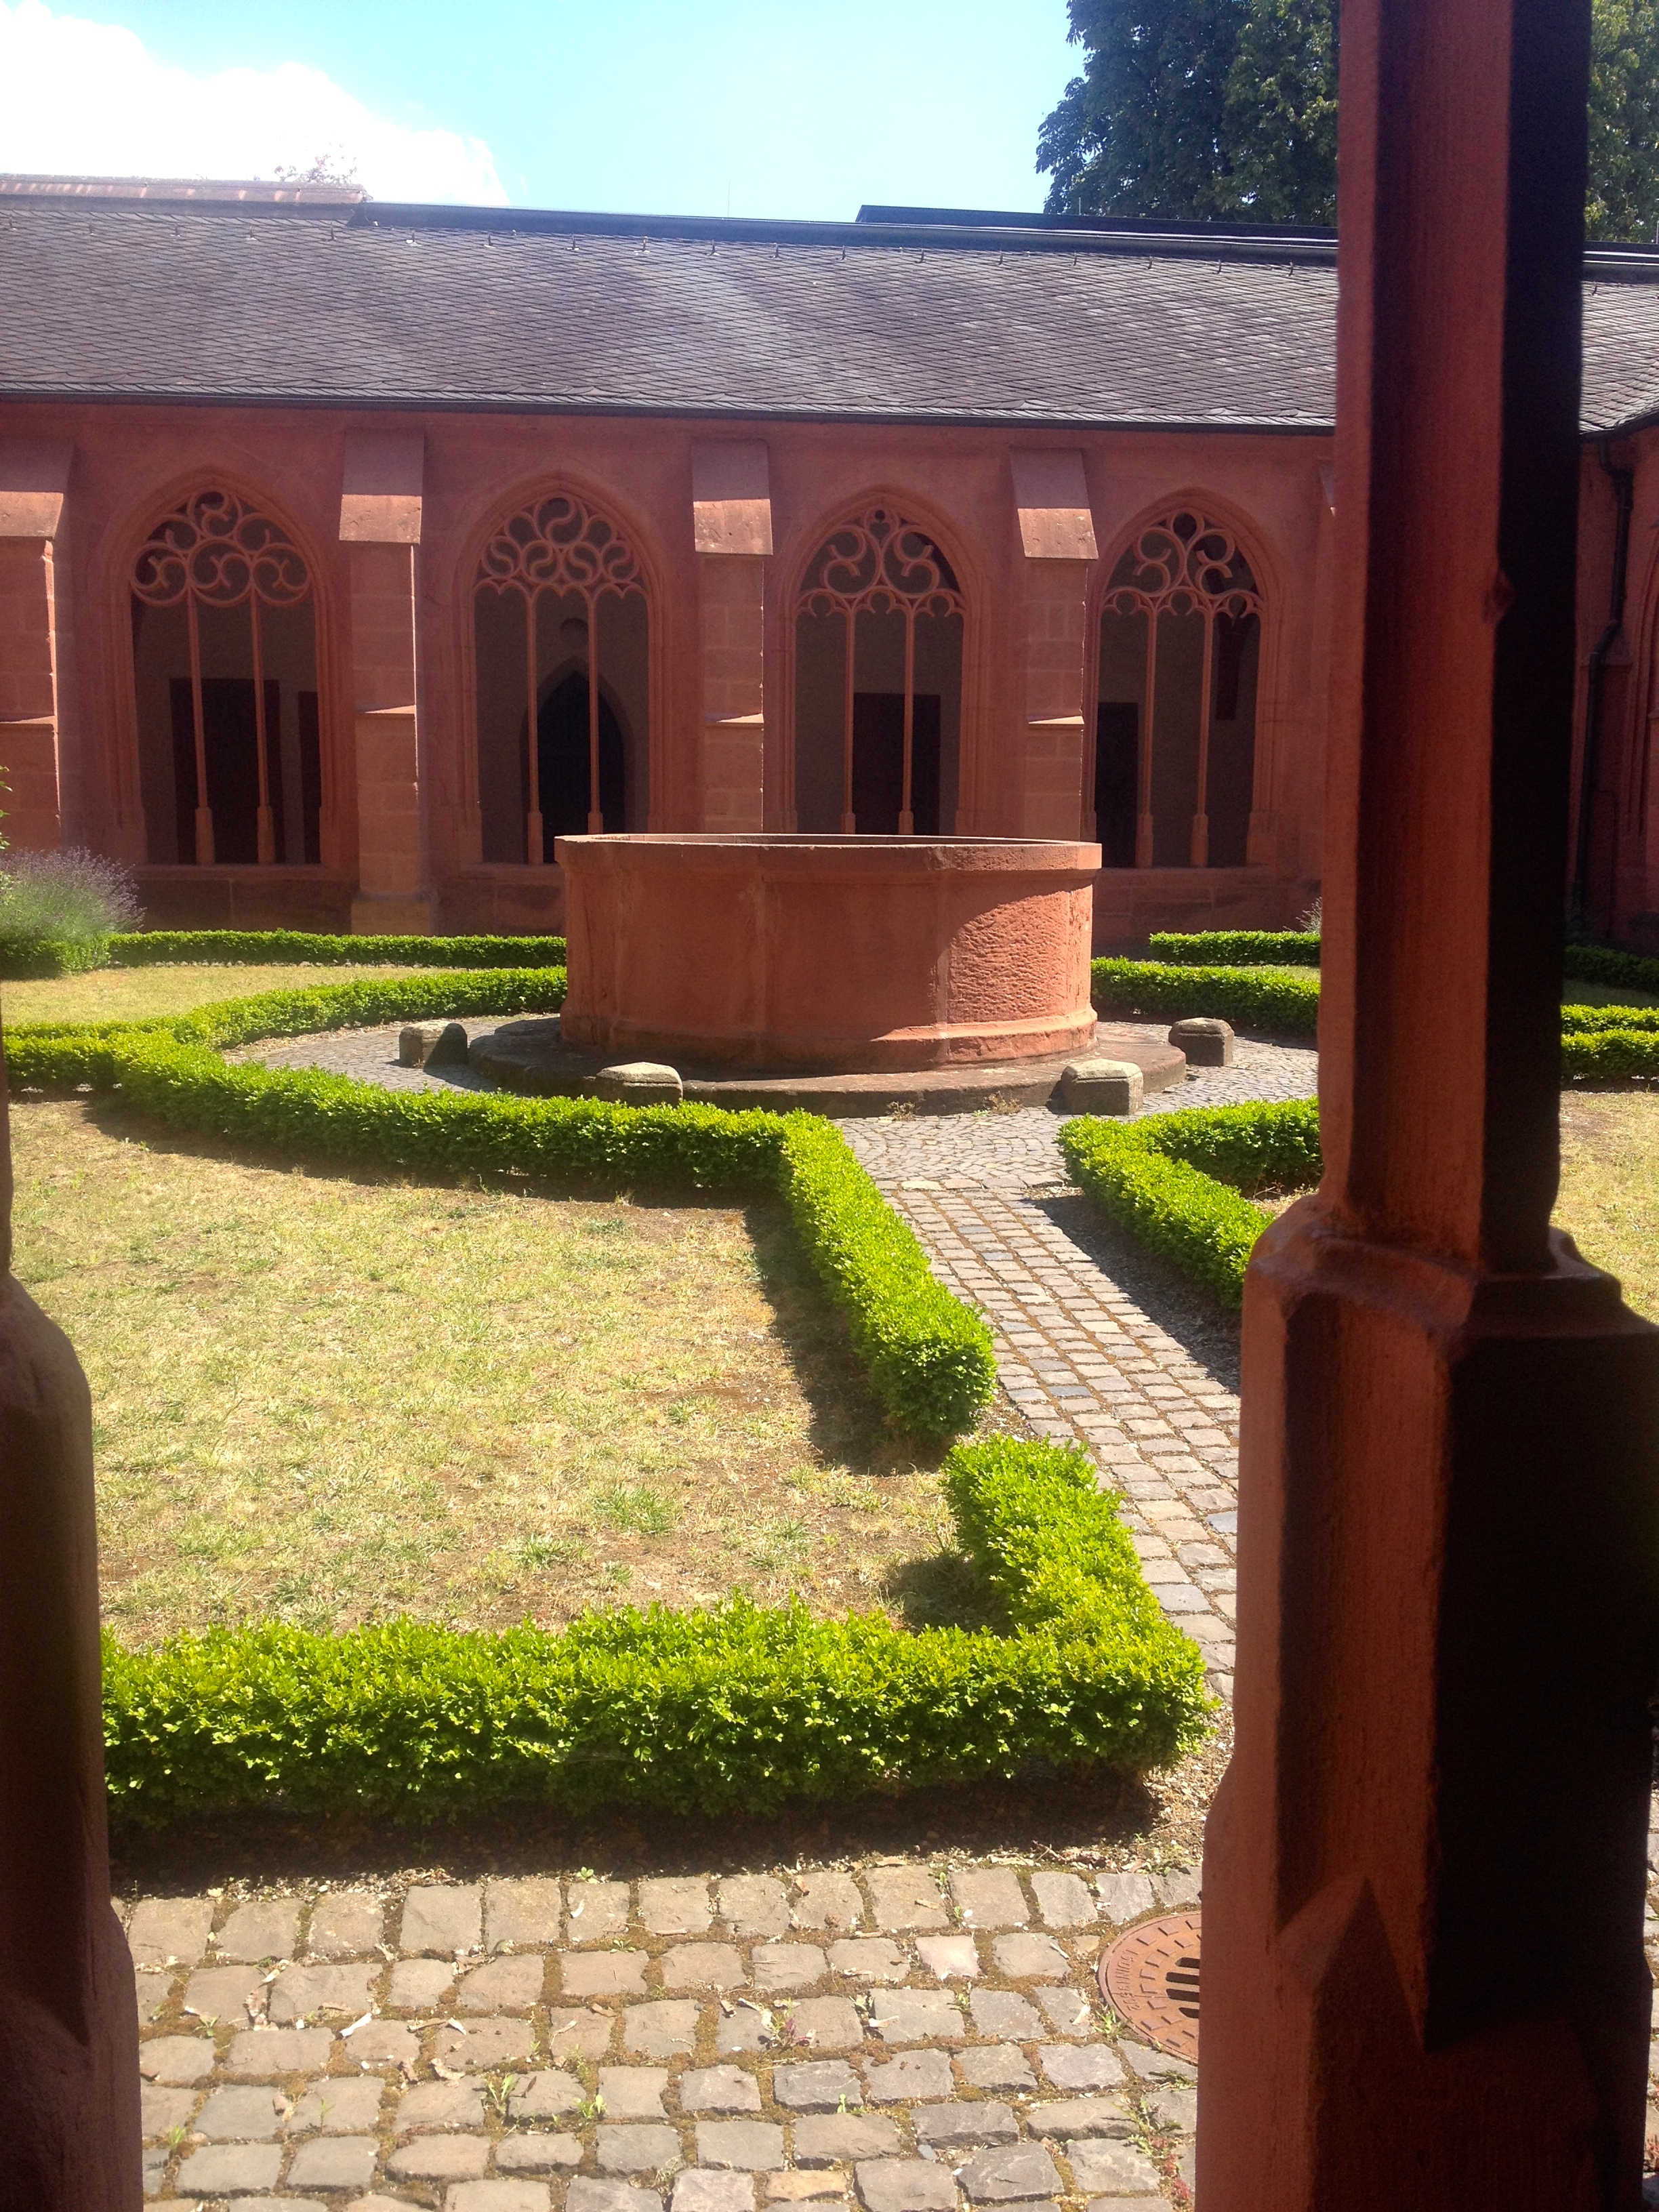 The cloisters of an old monastery behind St. Stephan's in Mainz